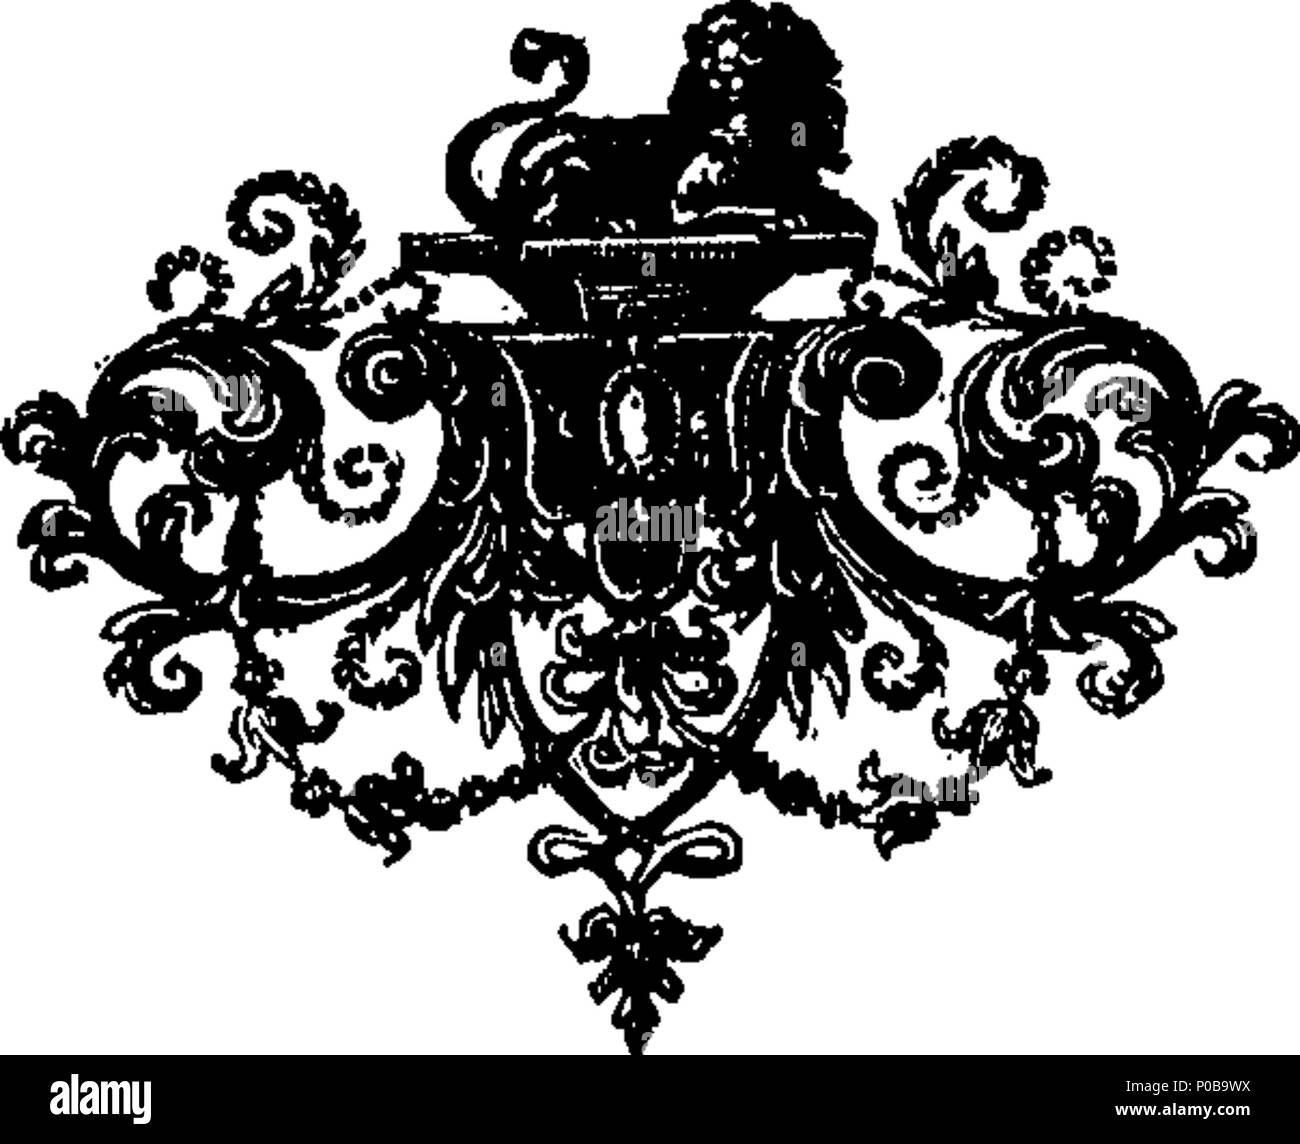 doric columns black and white stock photos images alamy Corinthian Order english fleuron from book a proposition for a new order in architecture